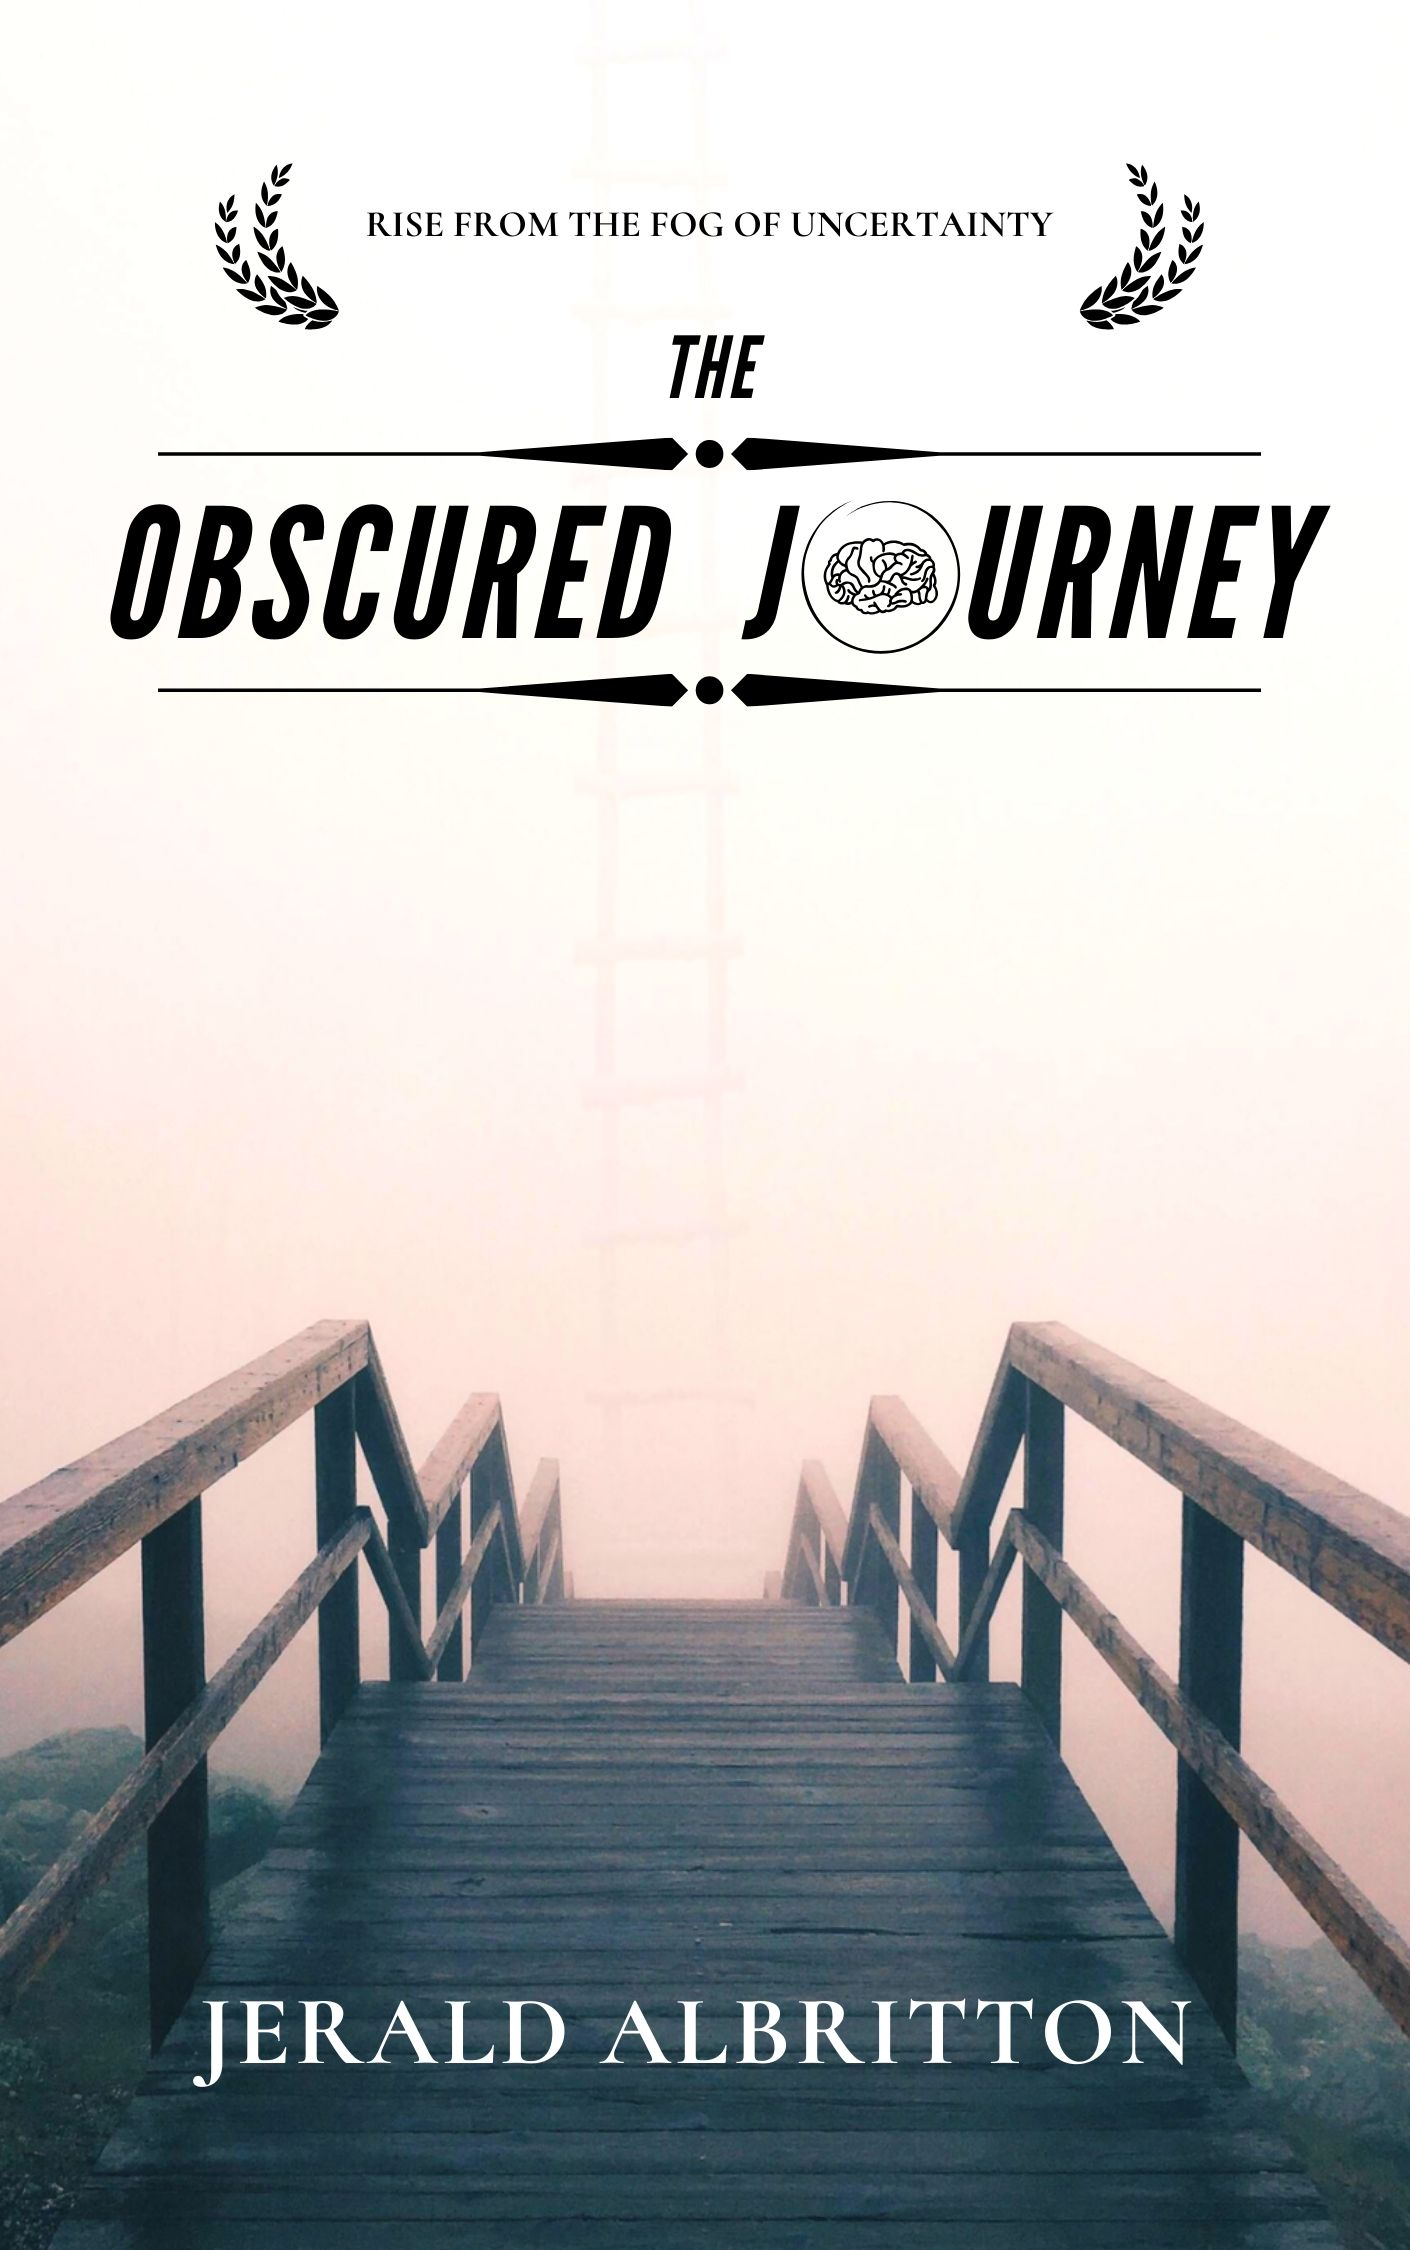 The Obscured Journey: Rise from the Fog of Uncertainty